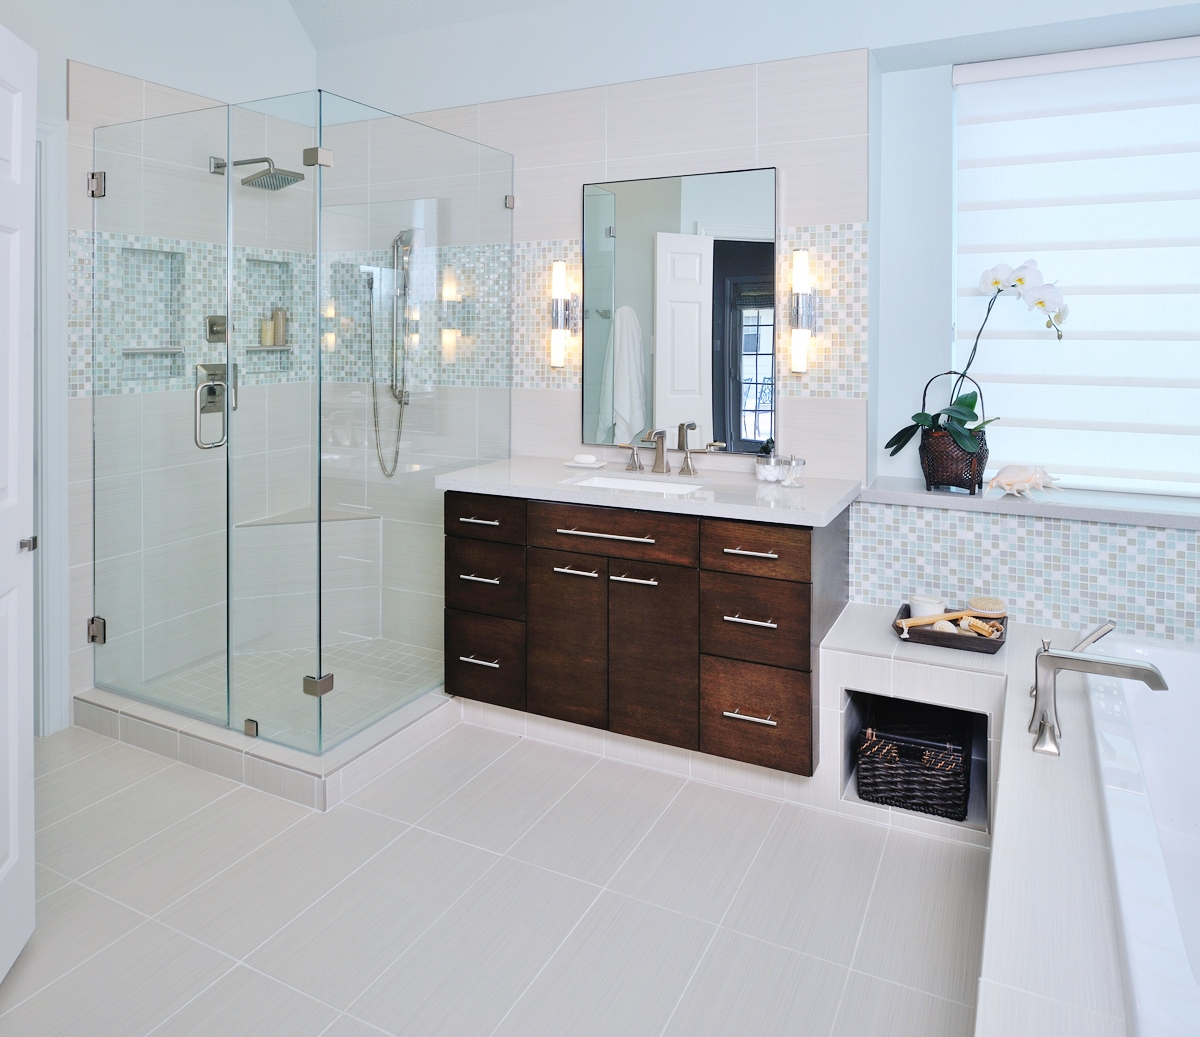 11 Creative Ways To Make A Small Bathroom Look Bigger Designed